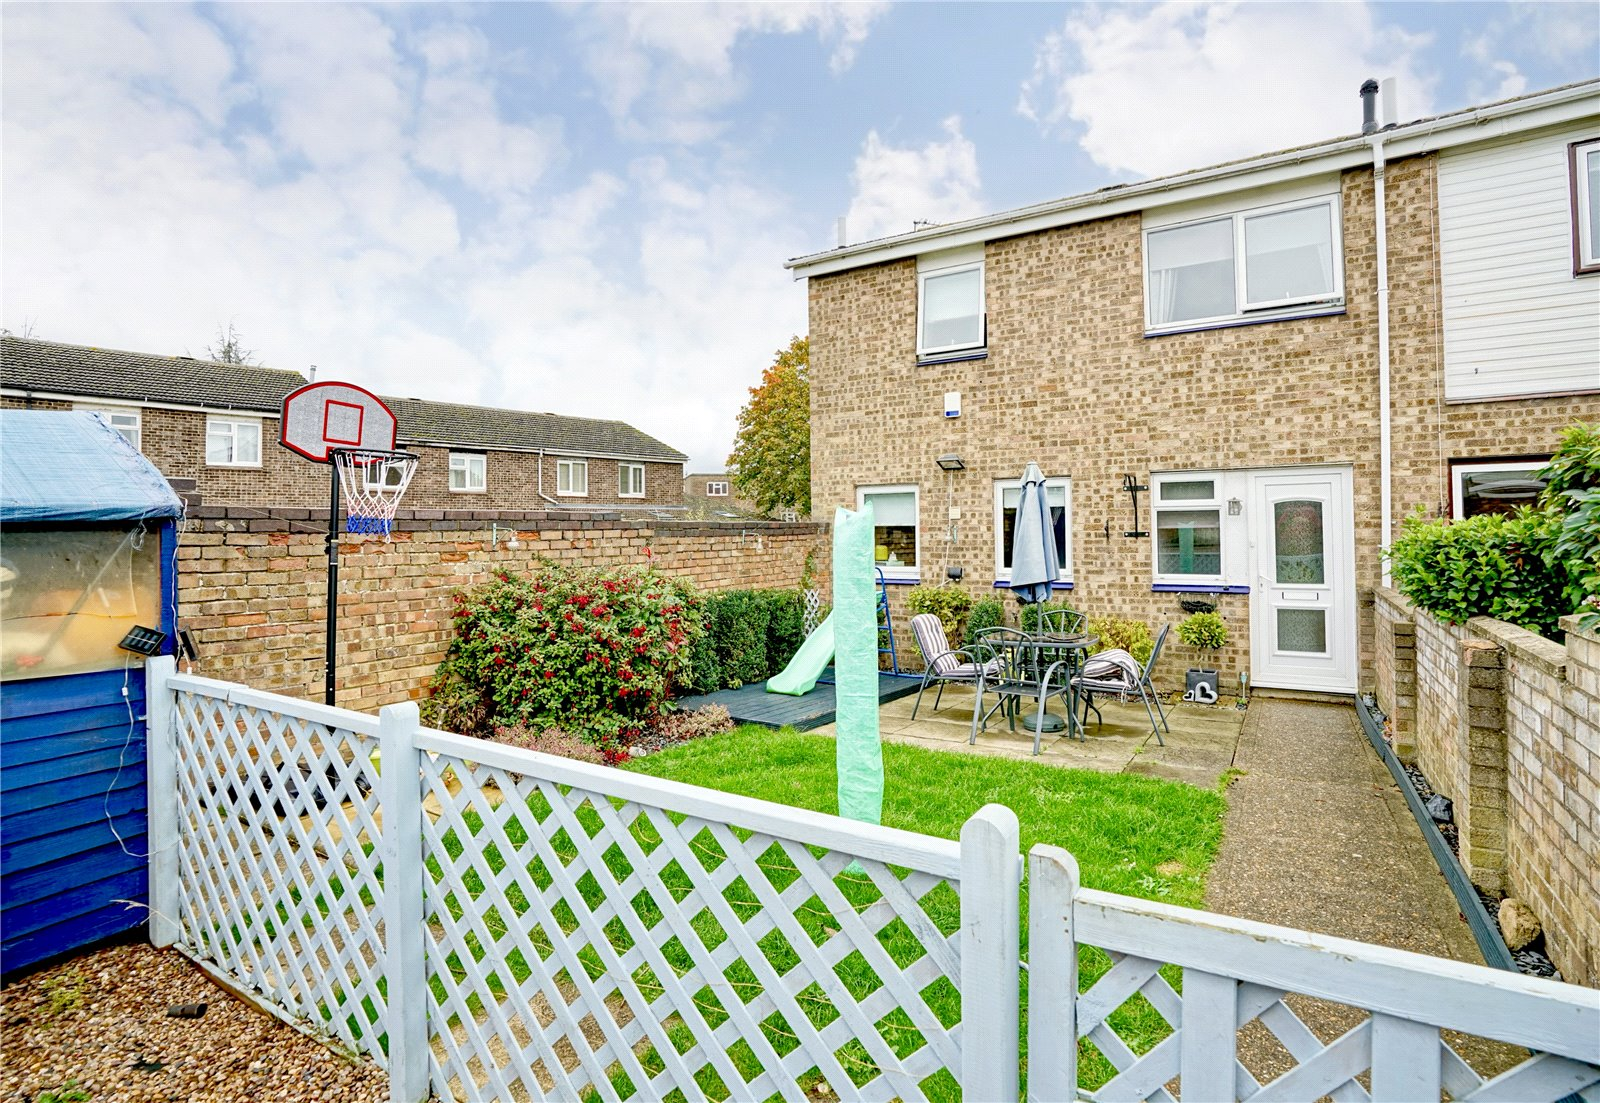 3 bed house for sale in Viscount Court, Eaton Socon - Property Image 1